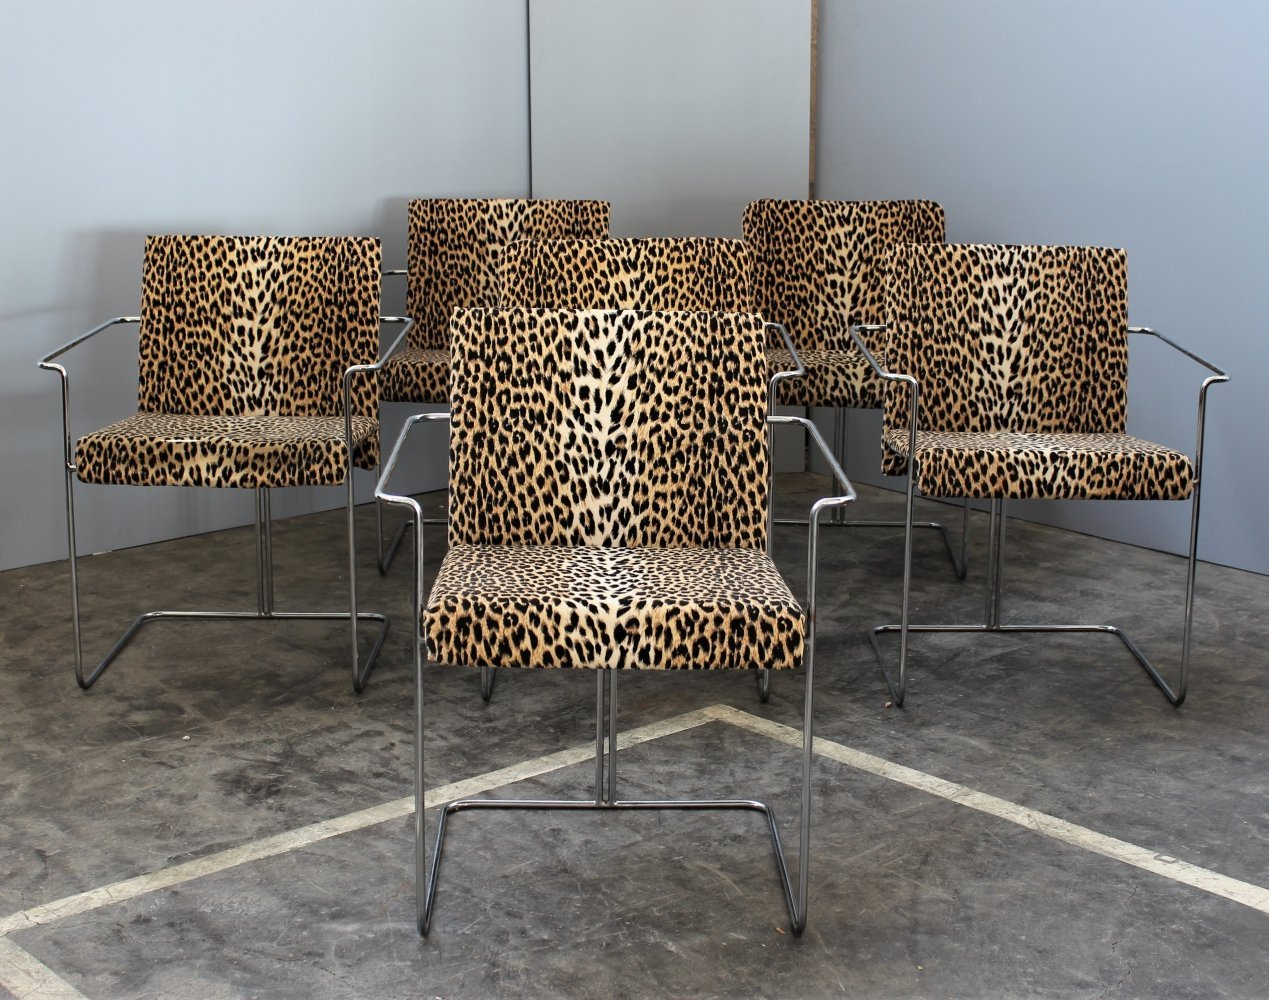 Set 6 tubular chairs in Leopard tapestry by Saporiti, Italy 1970